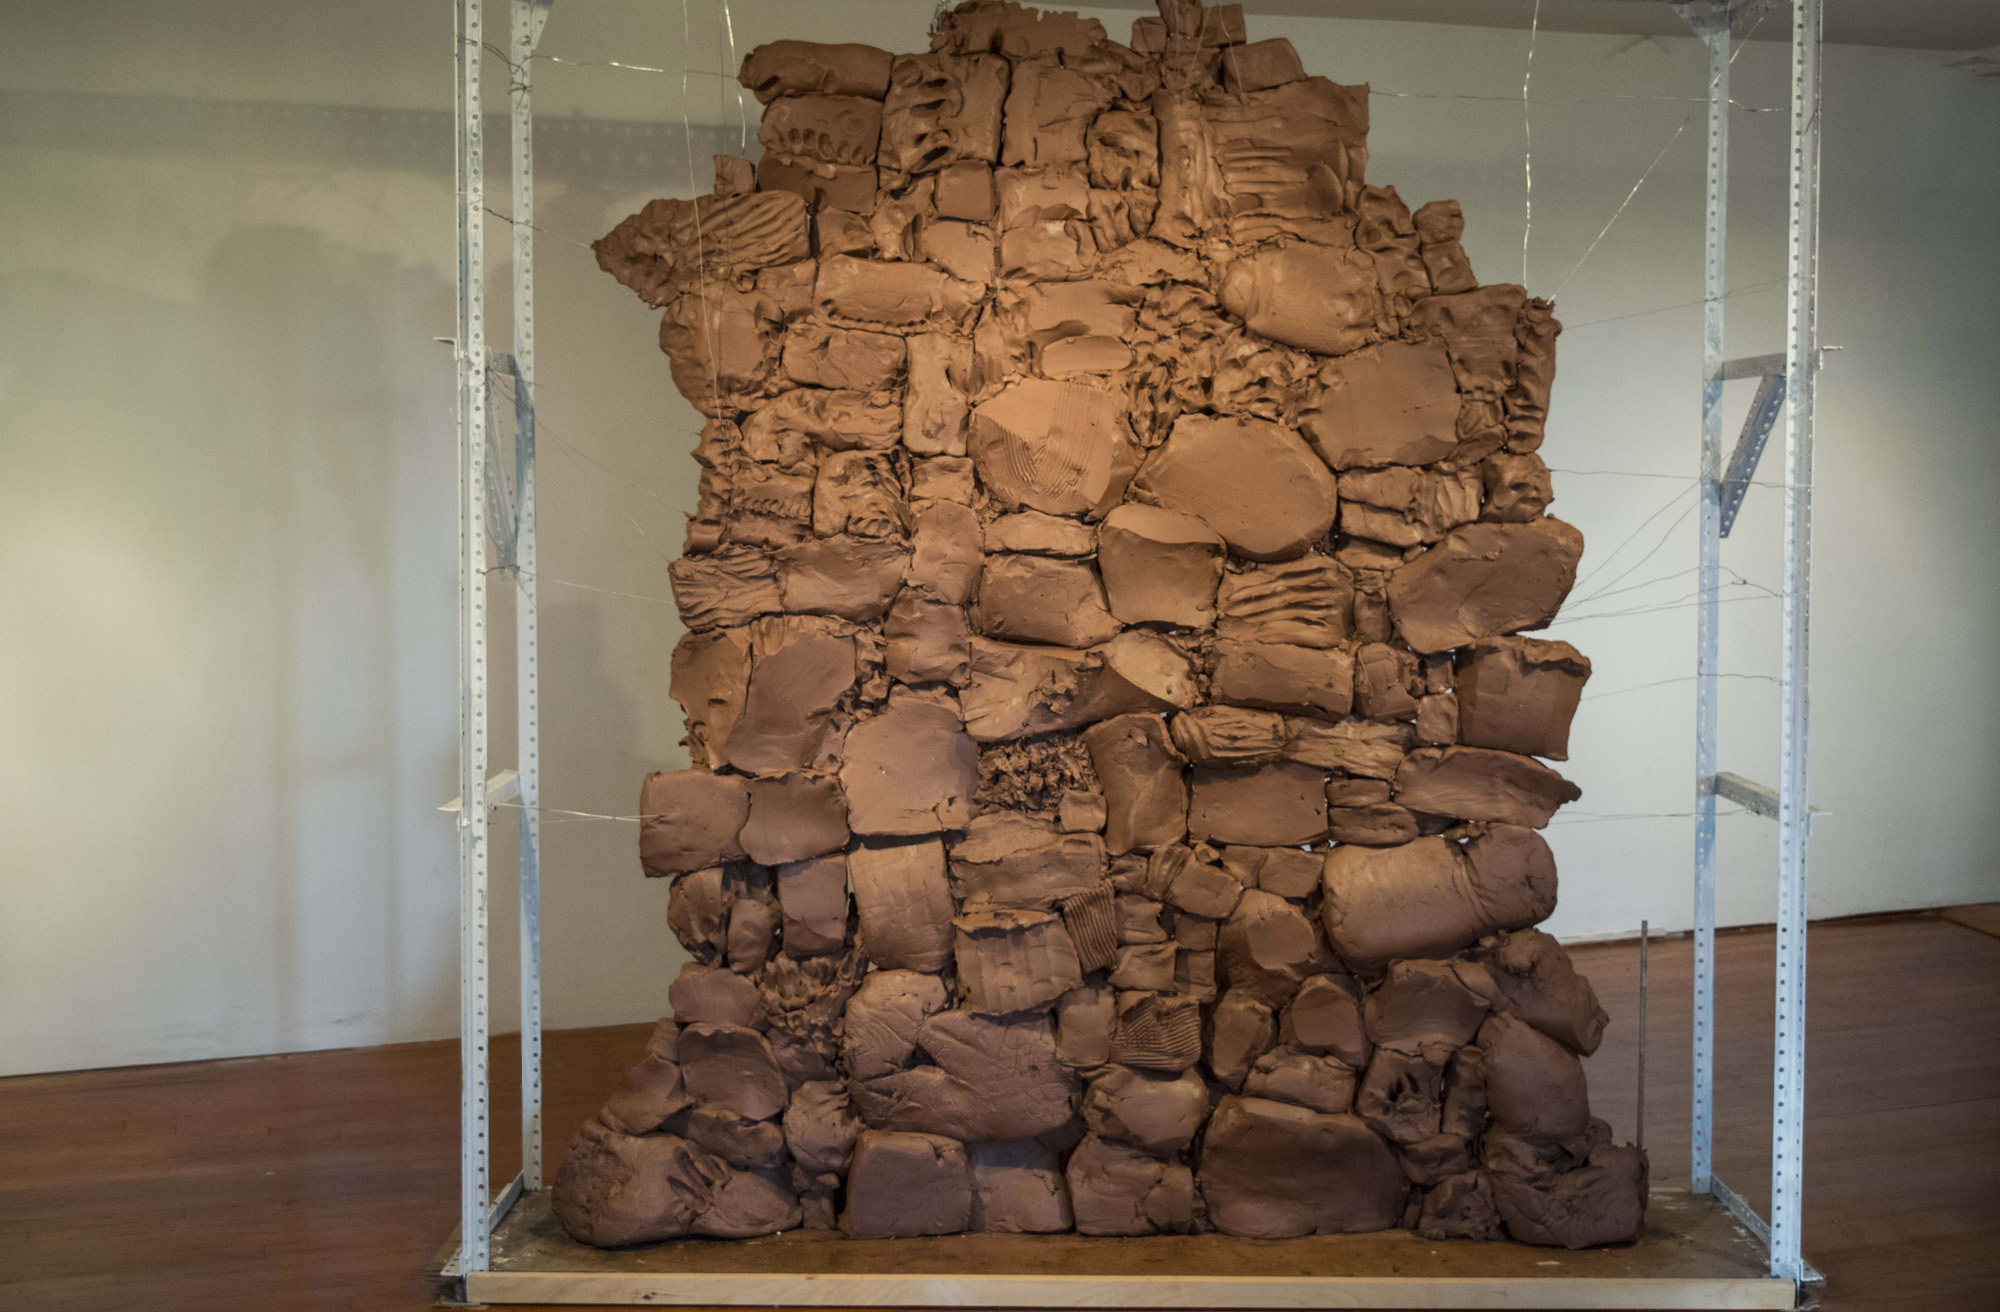 Wall , moist clay, 7 x 6 x 1 feet, 2016. Site specific work for Crystal Park Open Studios, Holmes, New York.